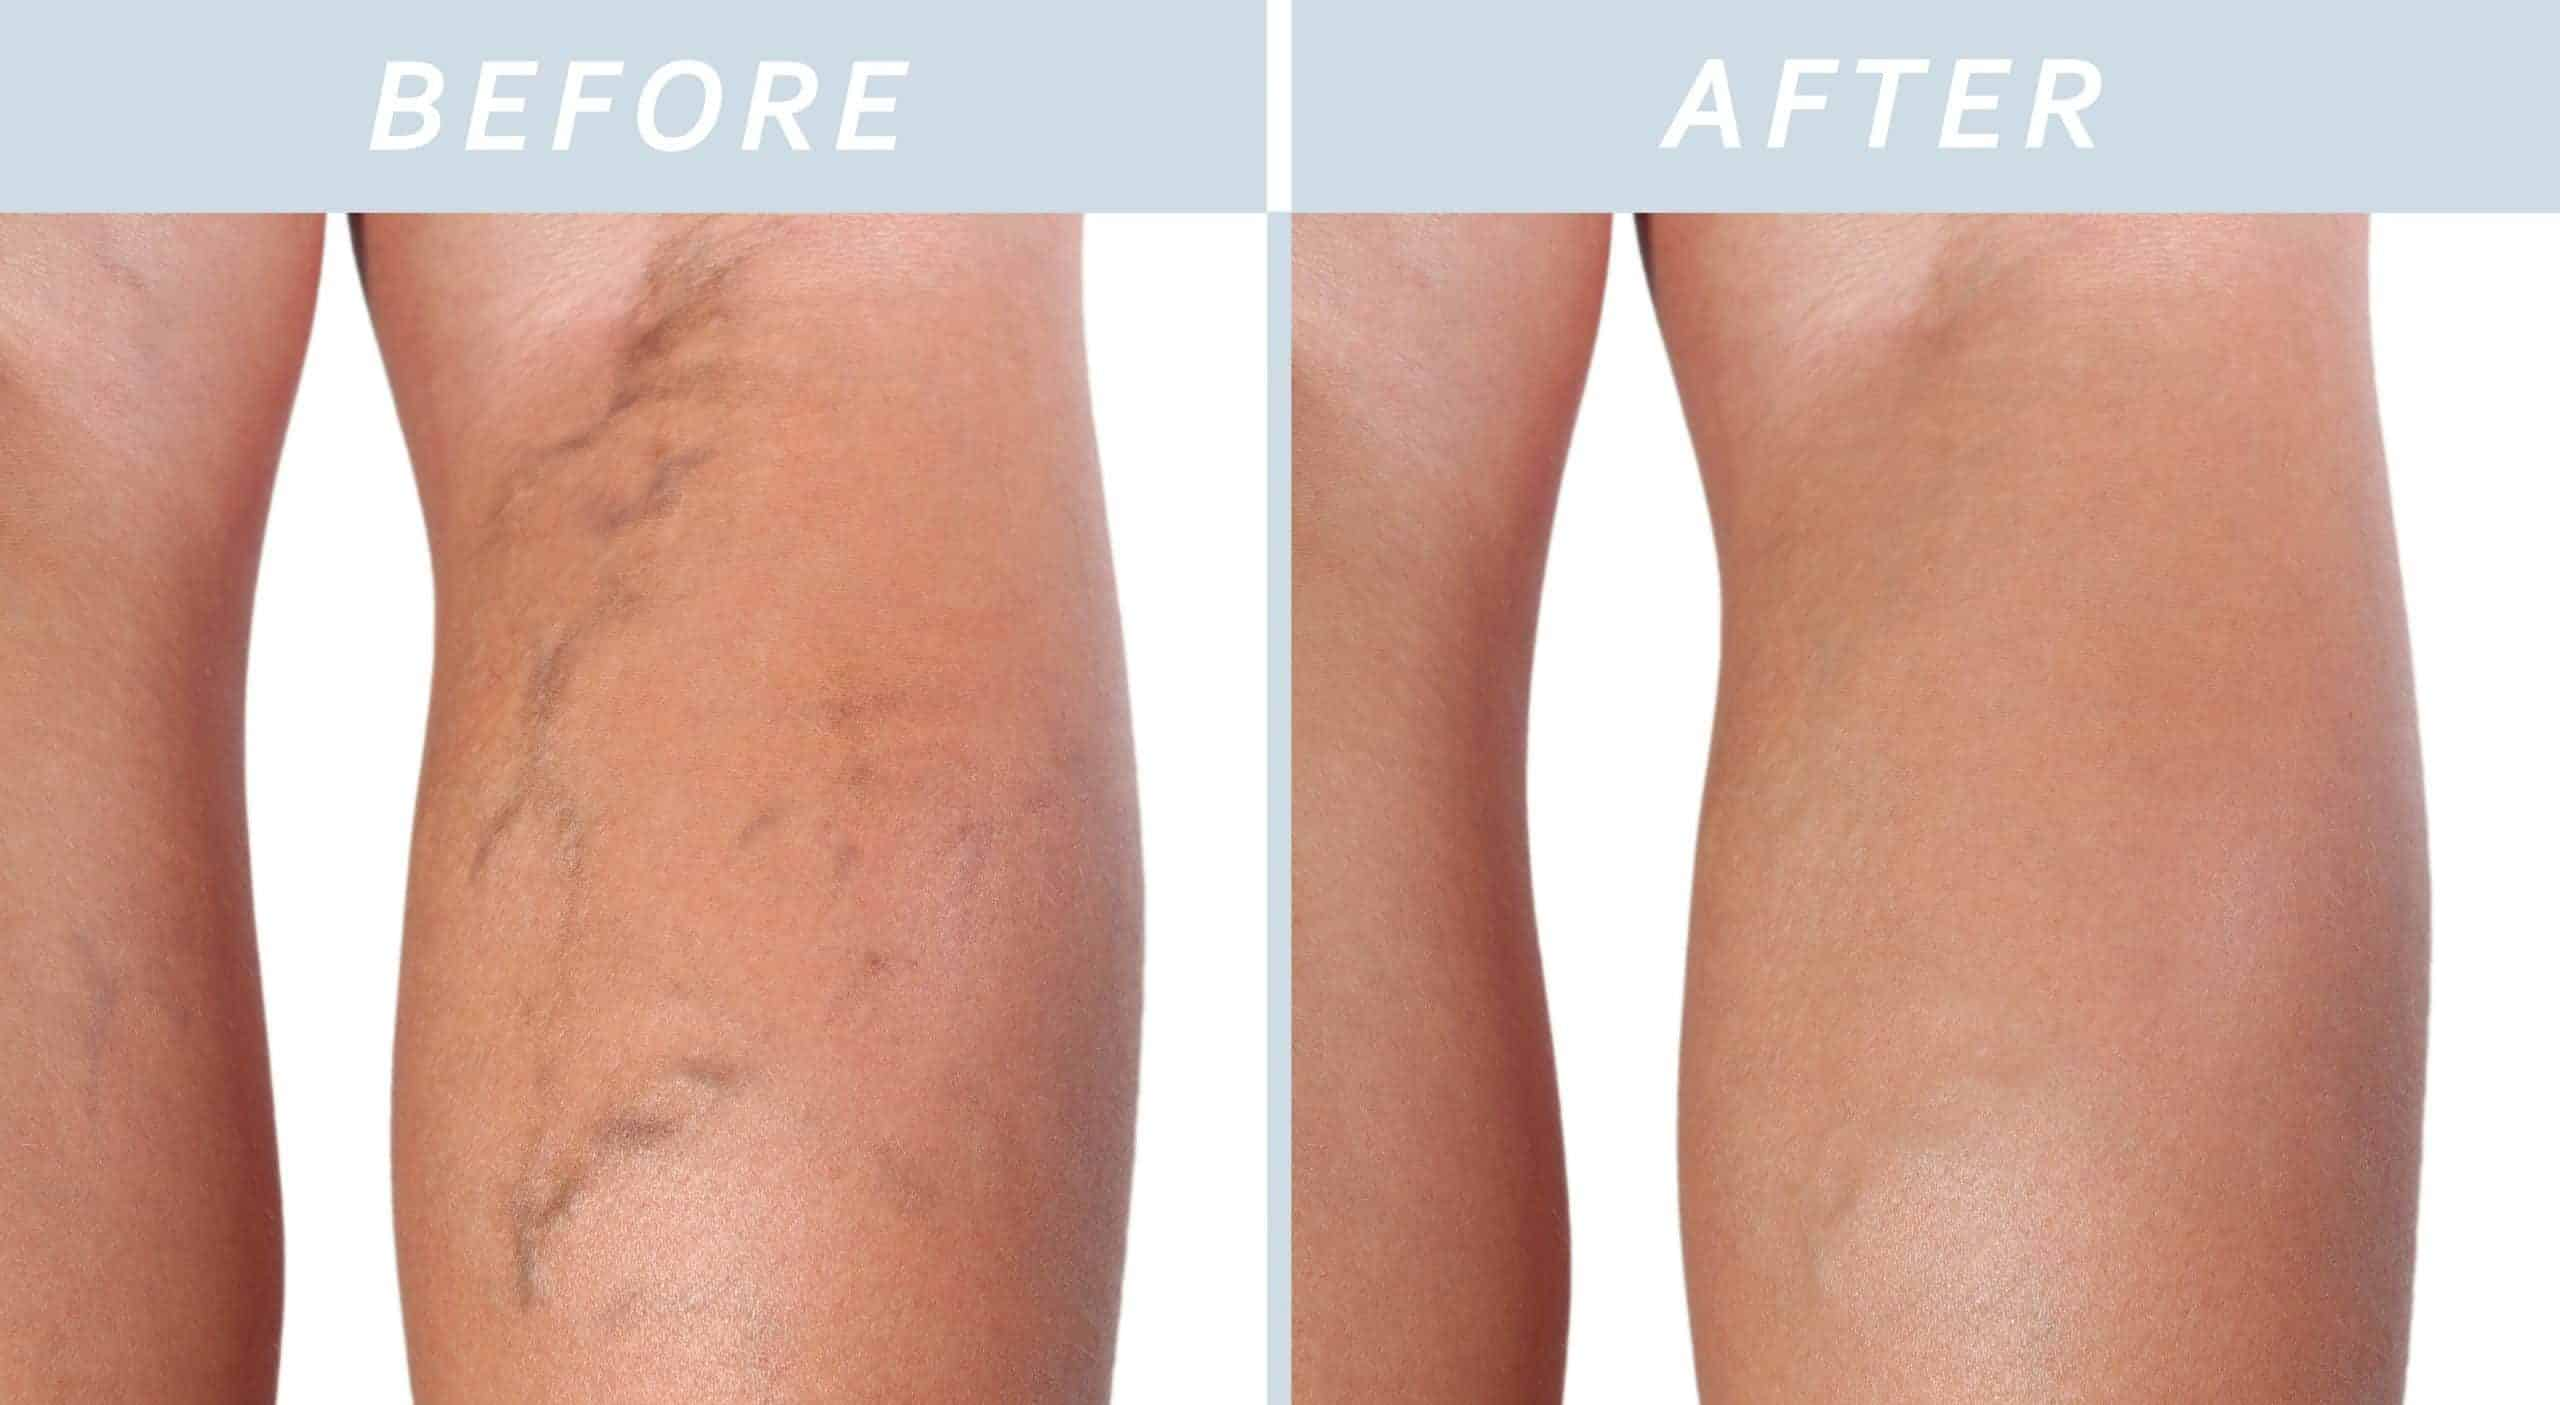 Asclera vein treatments